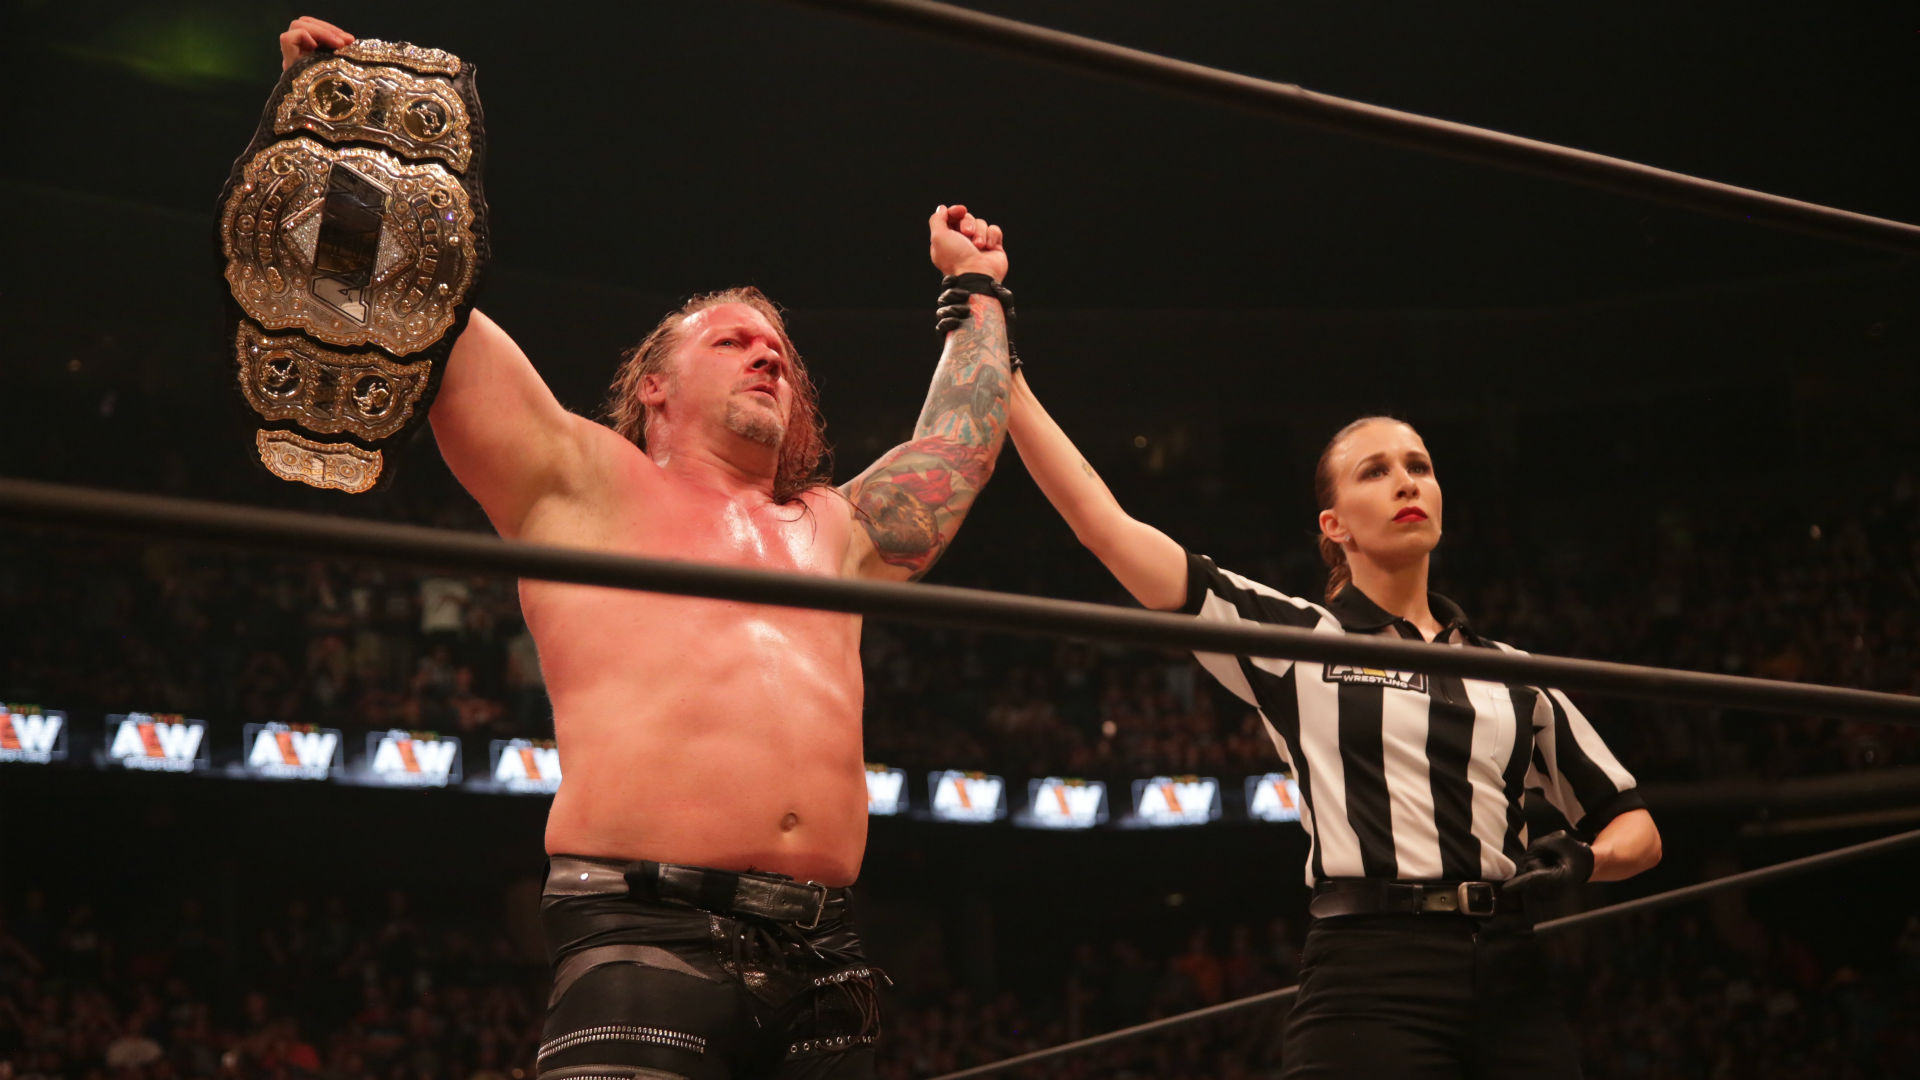 The highs and lows of AEW's All Out